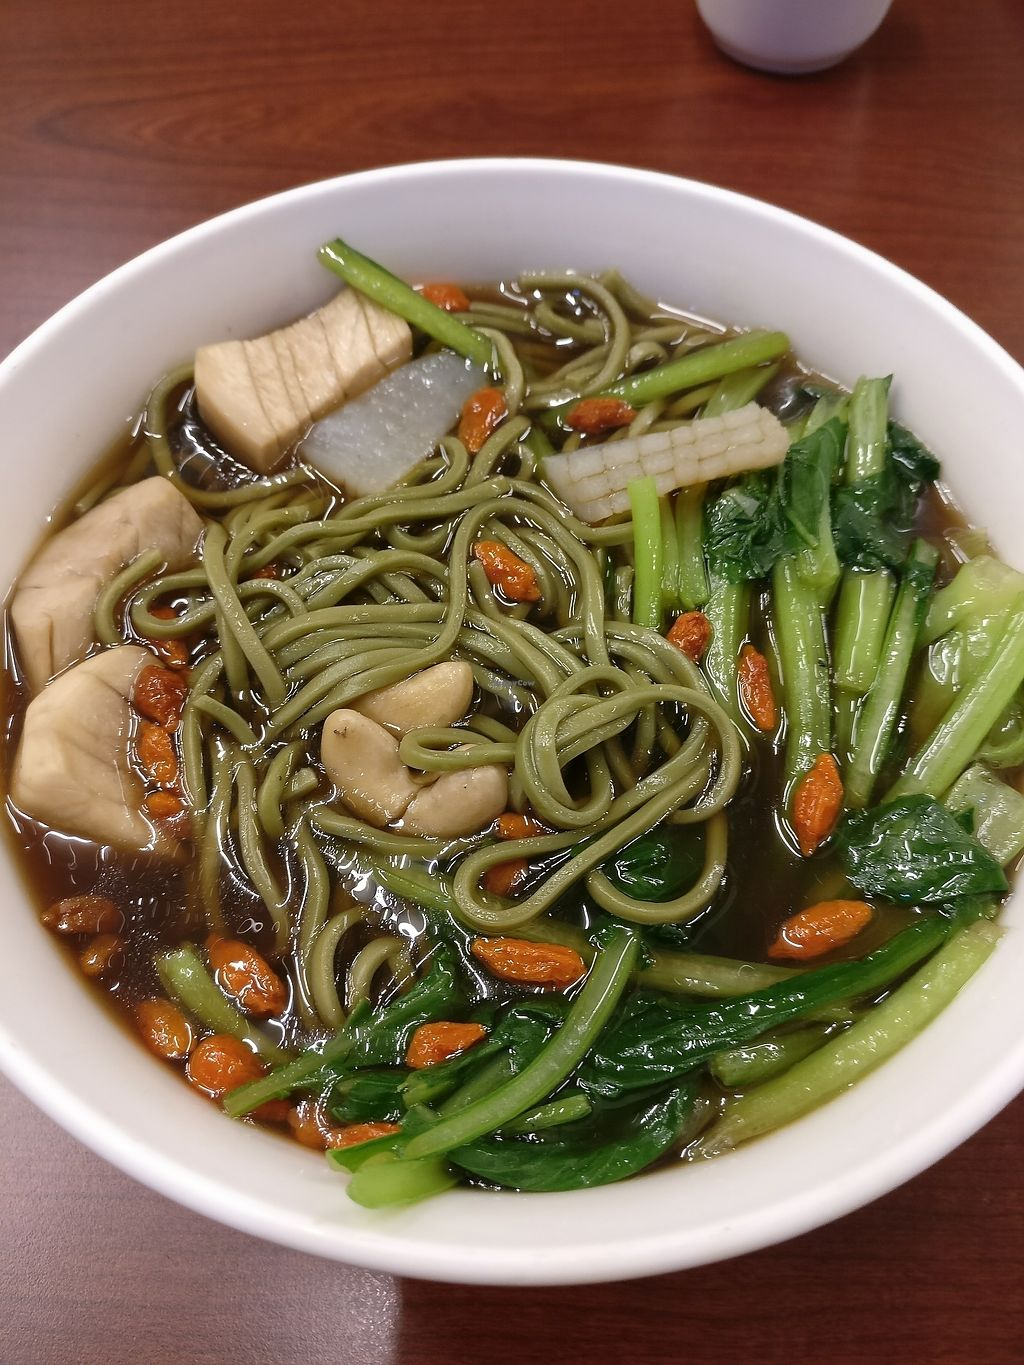 """Photo of Tai Lai  by <a href=""""/members/profile/bulma"""">bulma</a> <br/>herbal alga noodle soup <br/> August 21, 2017  - <a href='/contact/abuse/image/39073/295175'>Report</a>"""